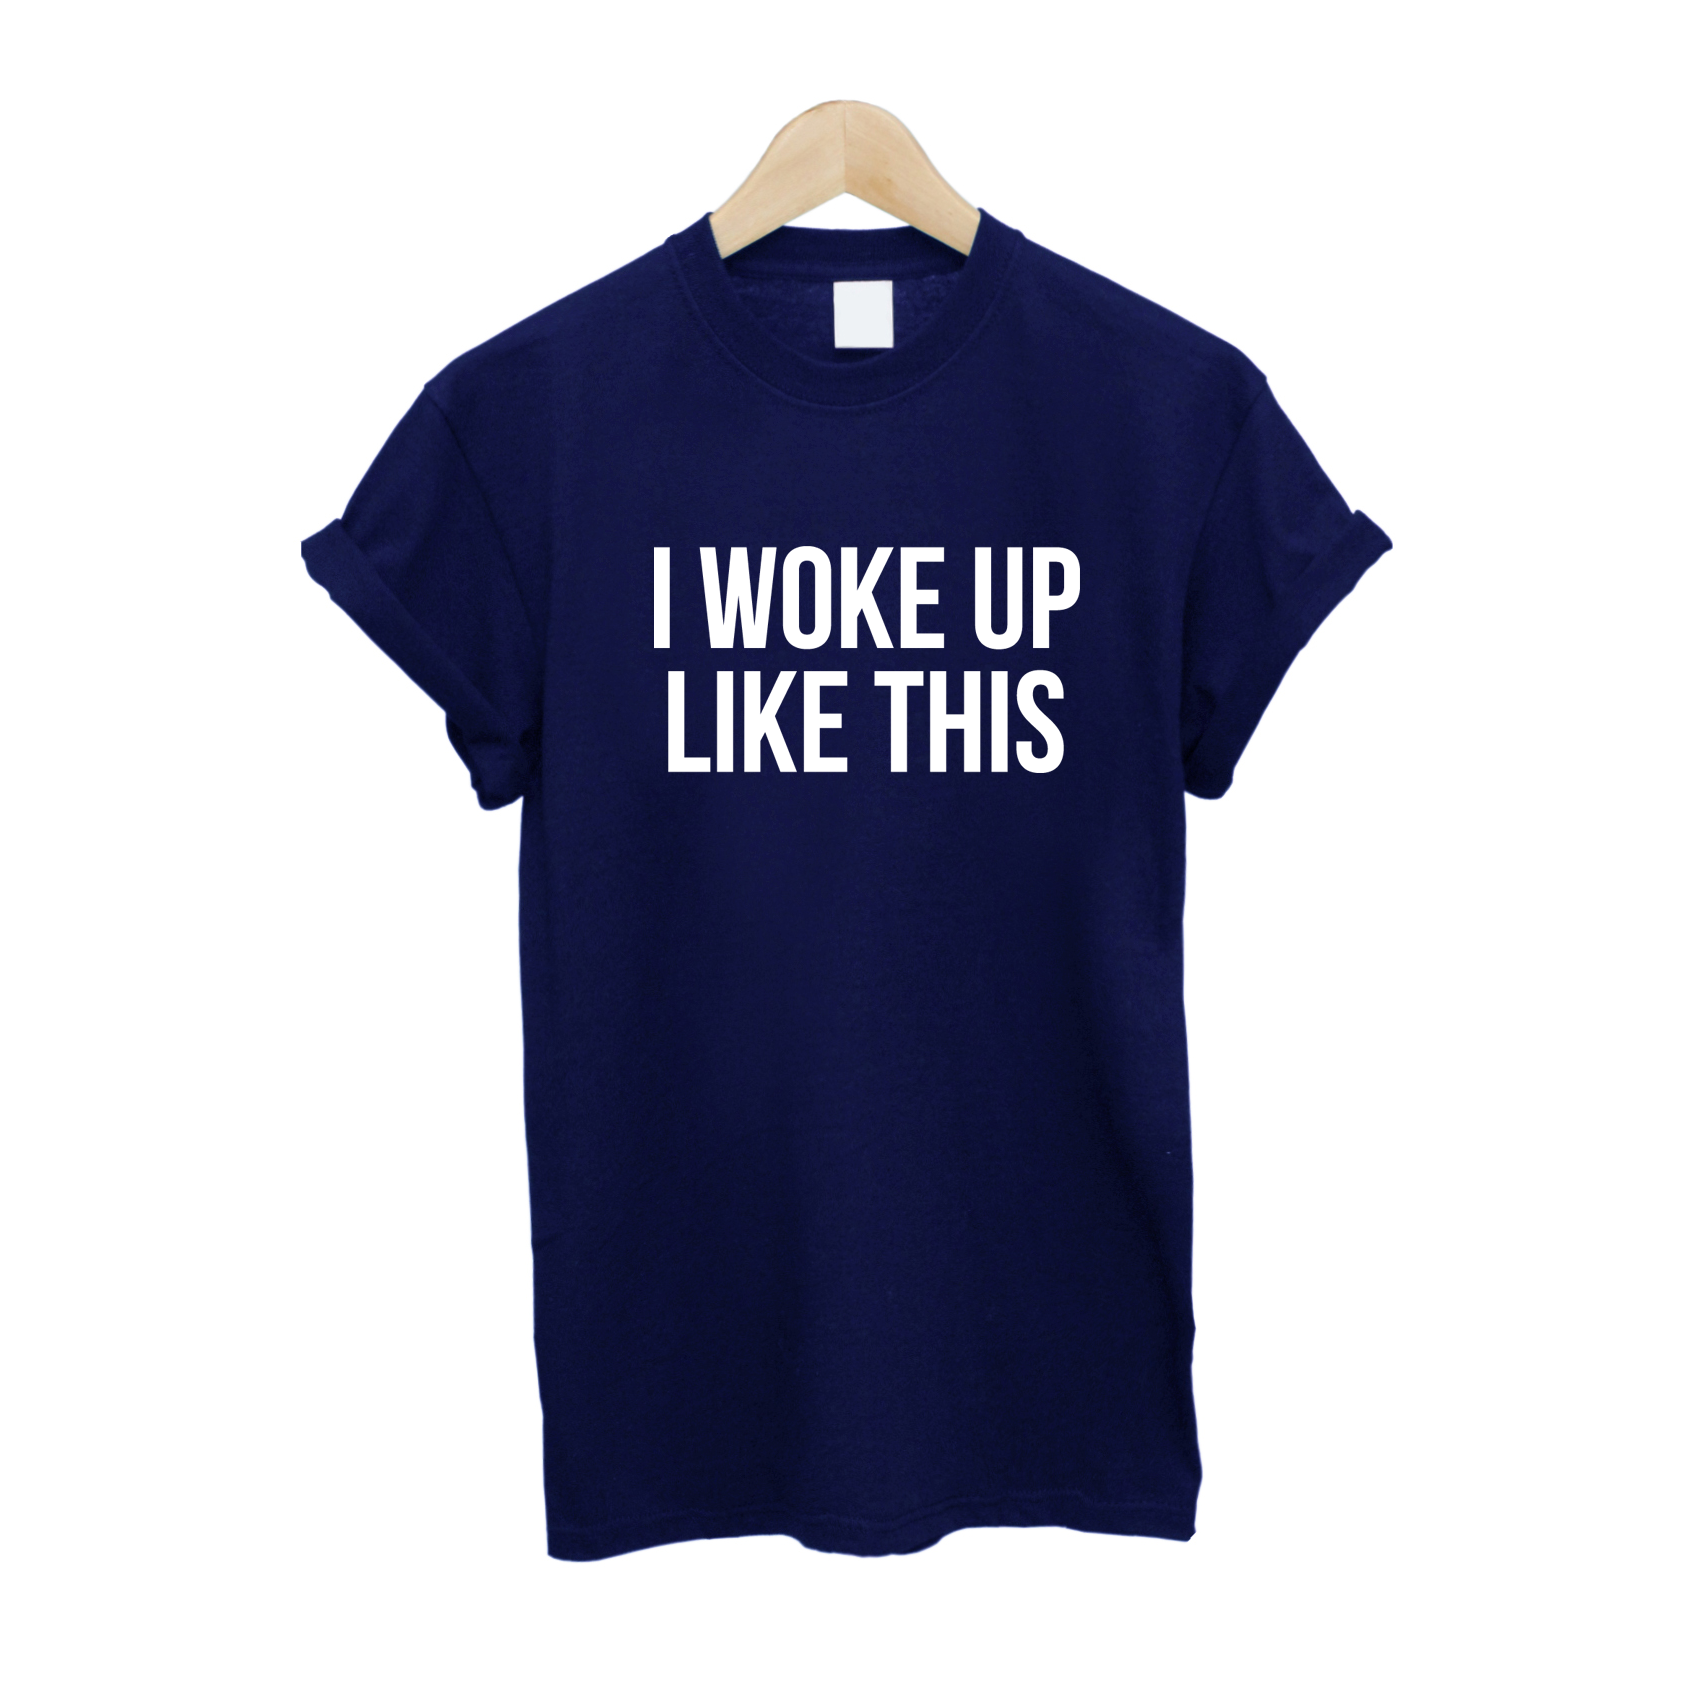 I Woke Up Like This T Shirt £10   Free UK Delivery   10% OFF